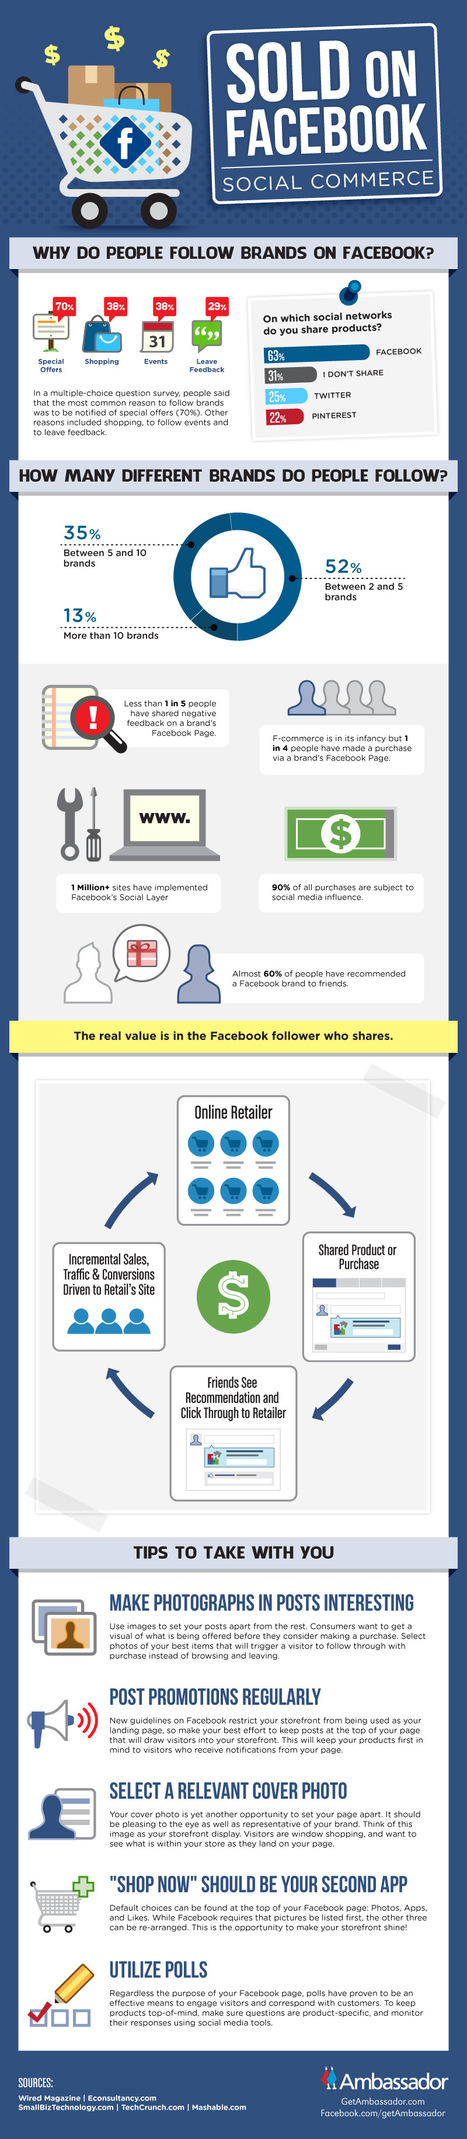 INFOGRAPHIC: What Makes People Sold On Brands On Facebook? | AtDotCom Social media | Scoop.it